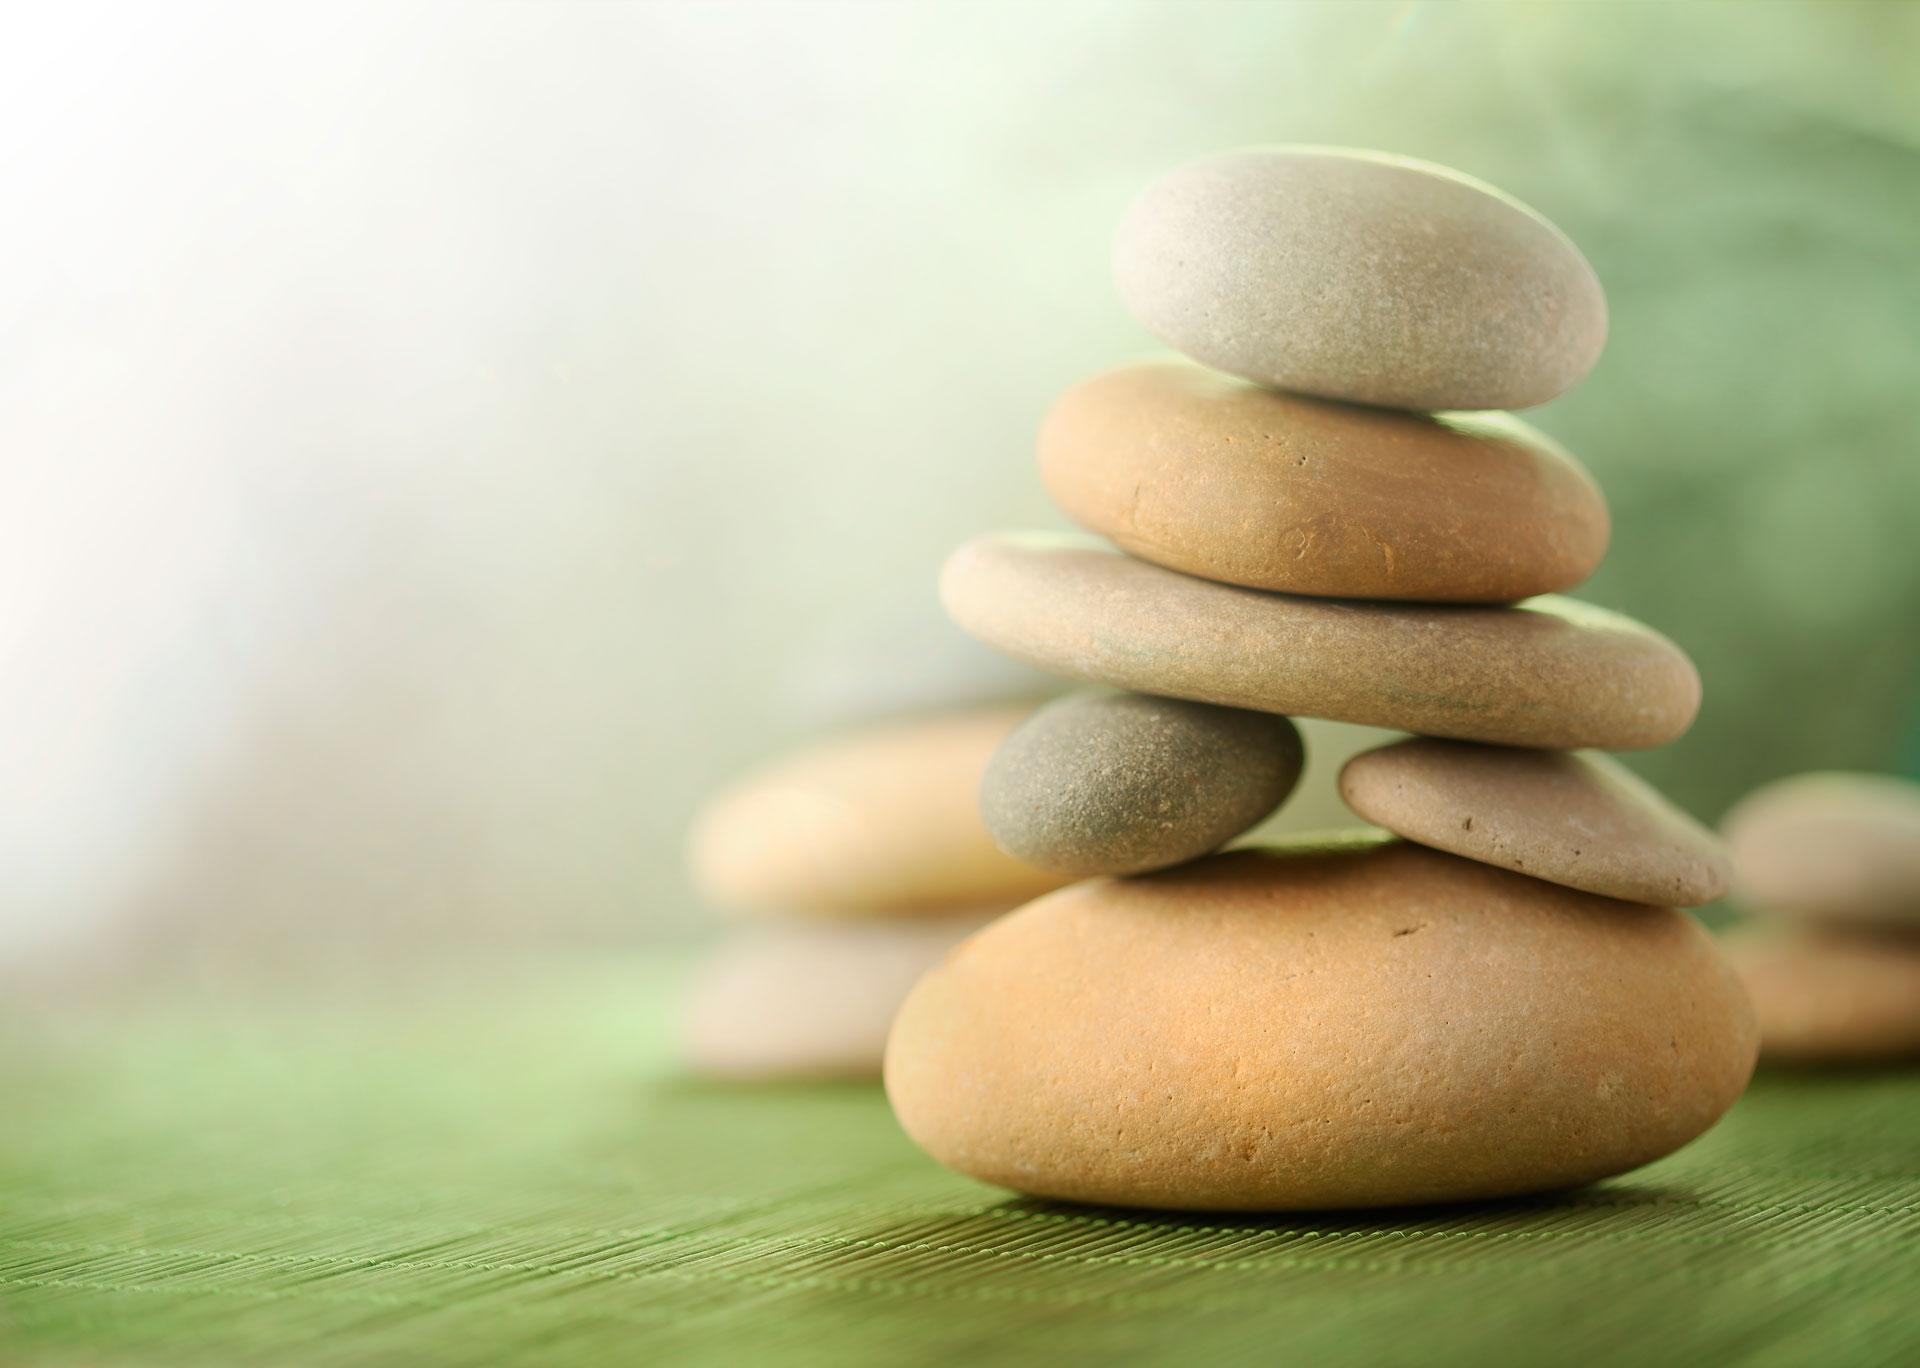 stacked-stones-on-mat-13471154_web